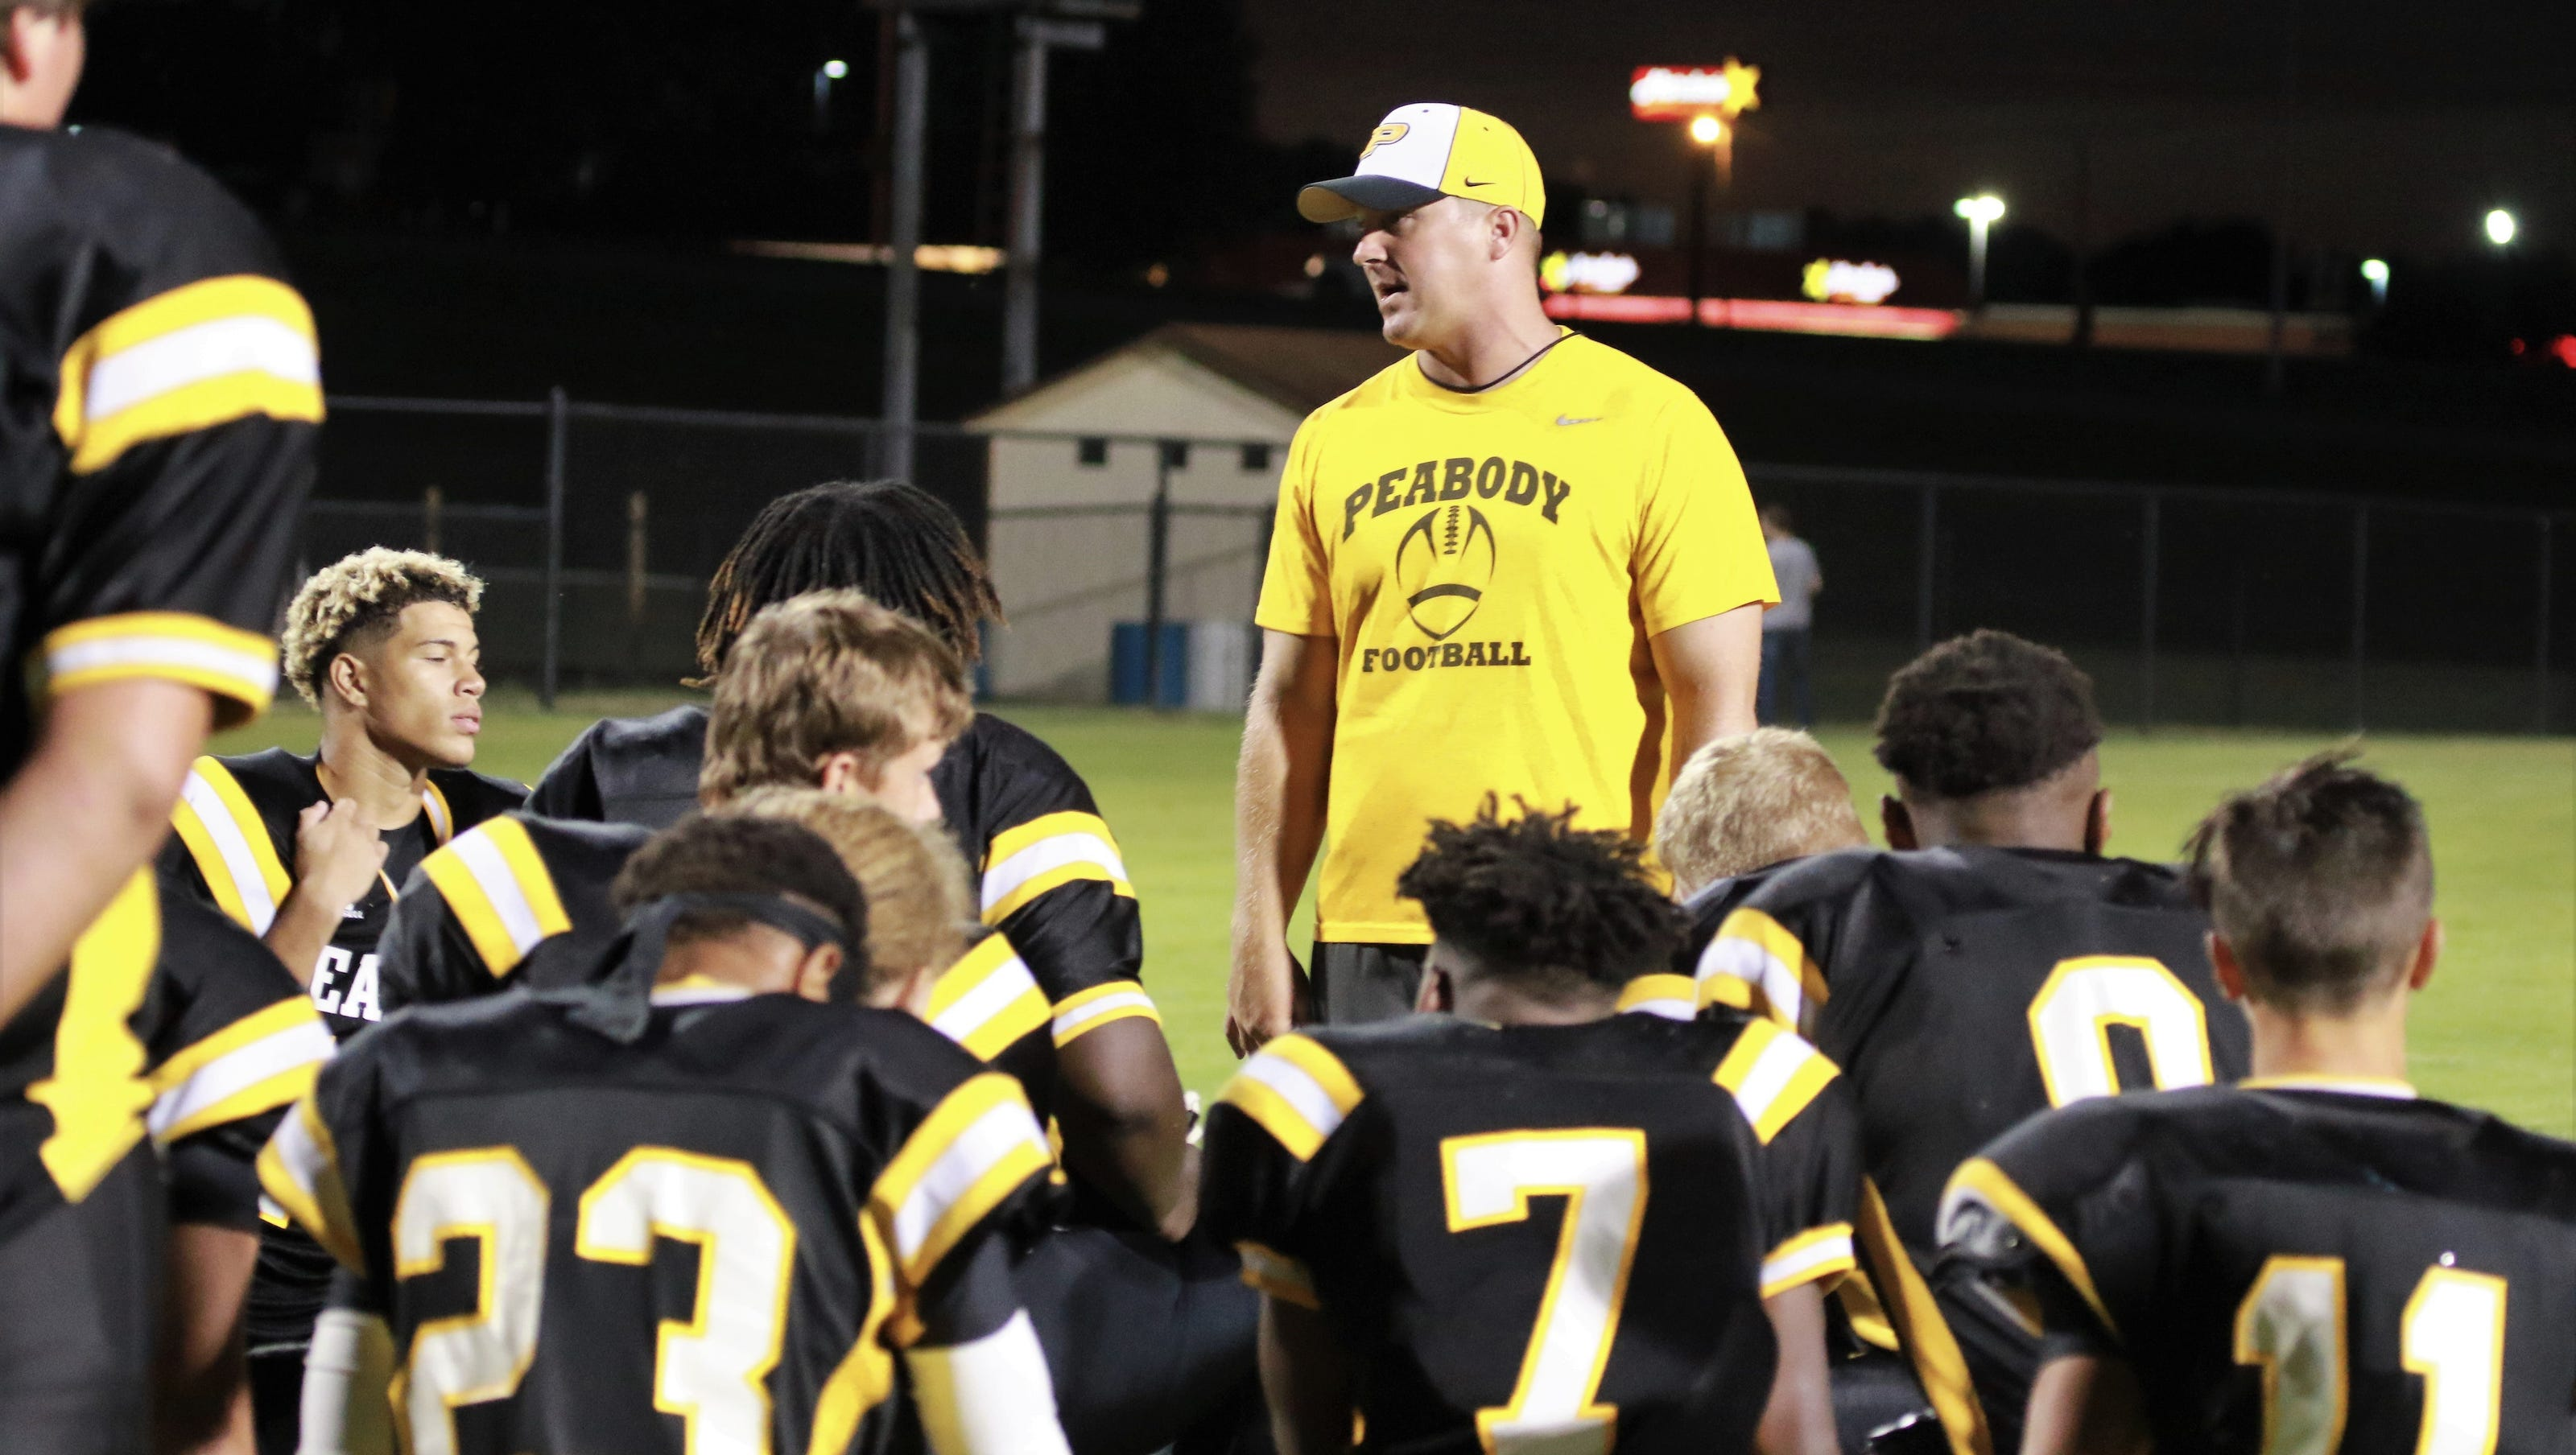 Peabody Football Team Self Imposes Restrictions After Tssaa Inquiry